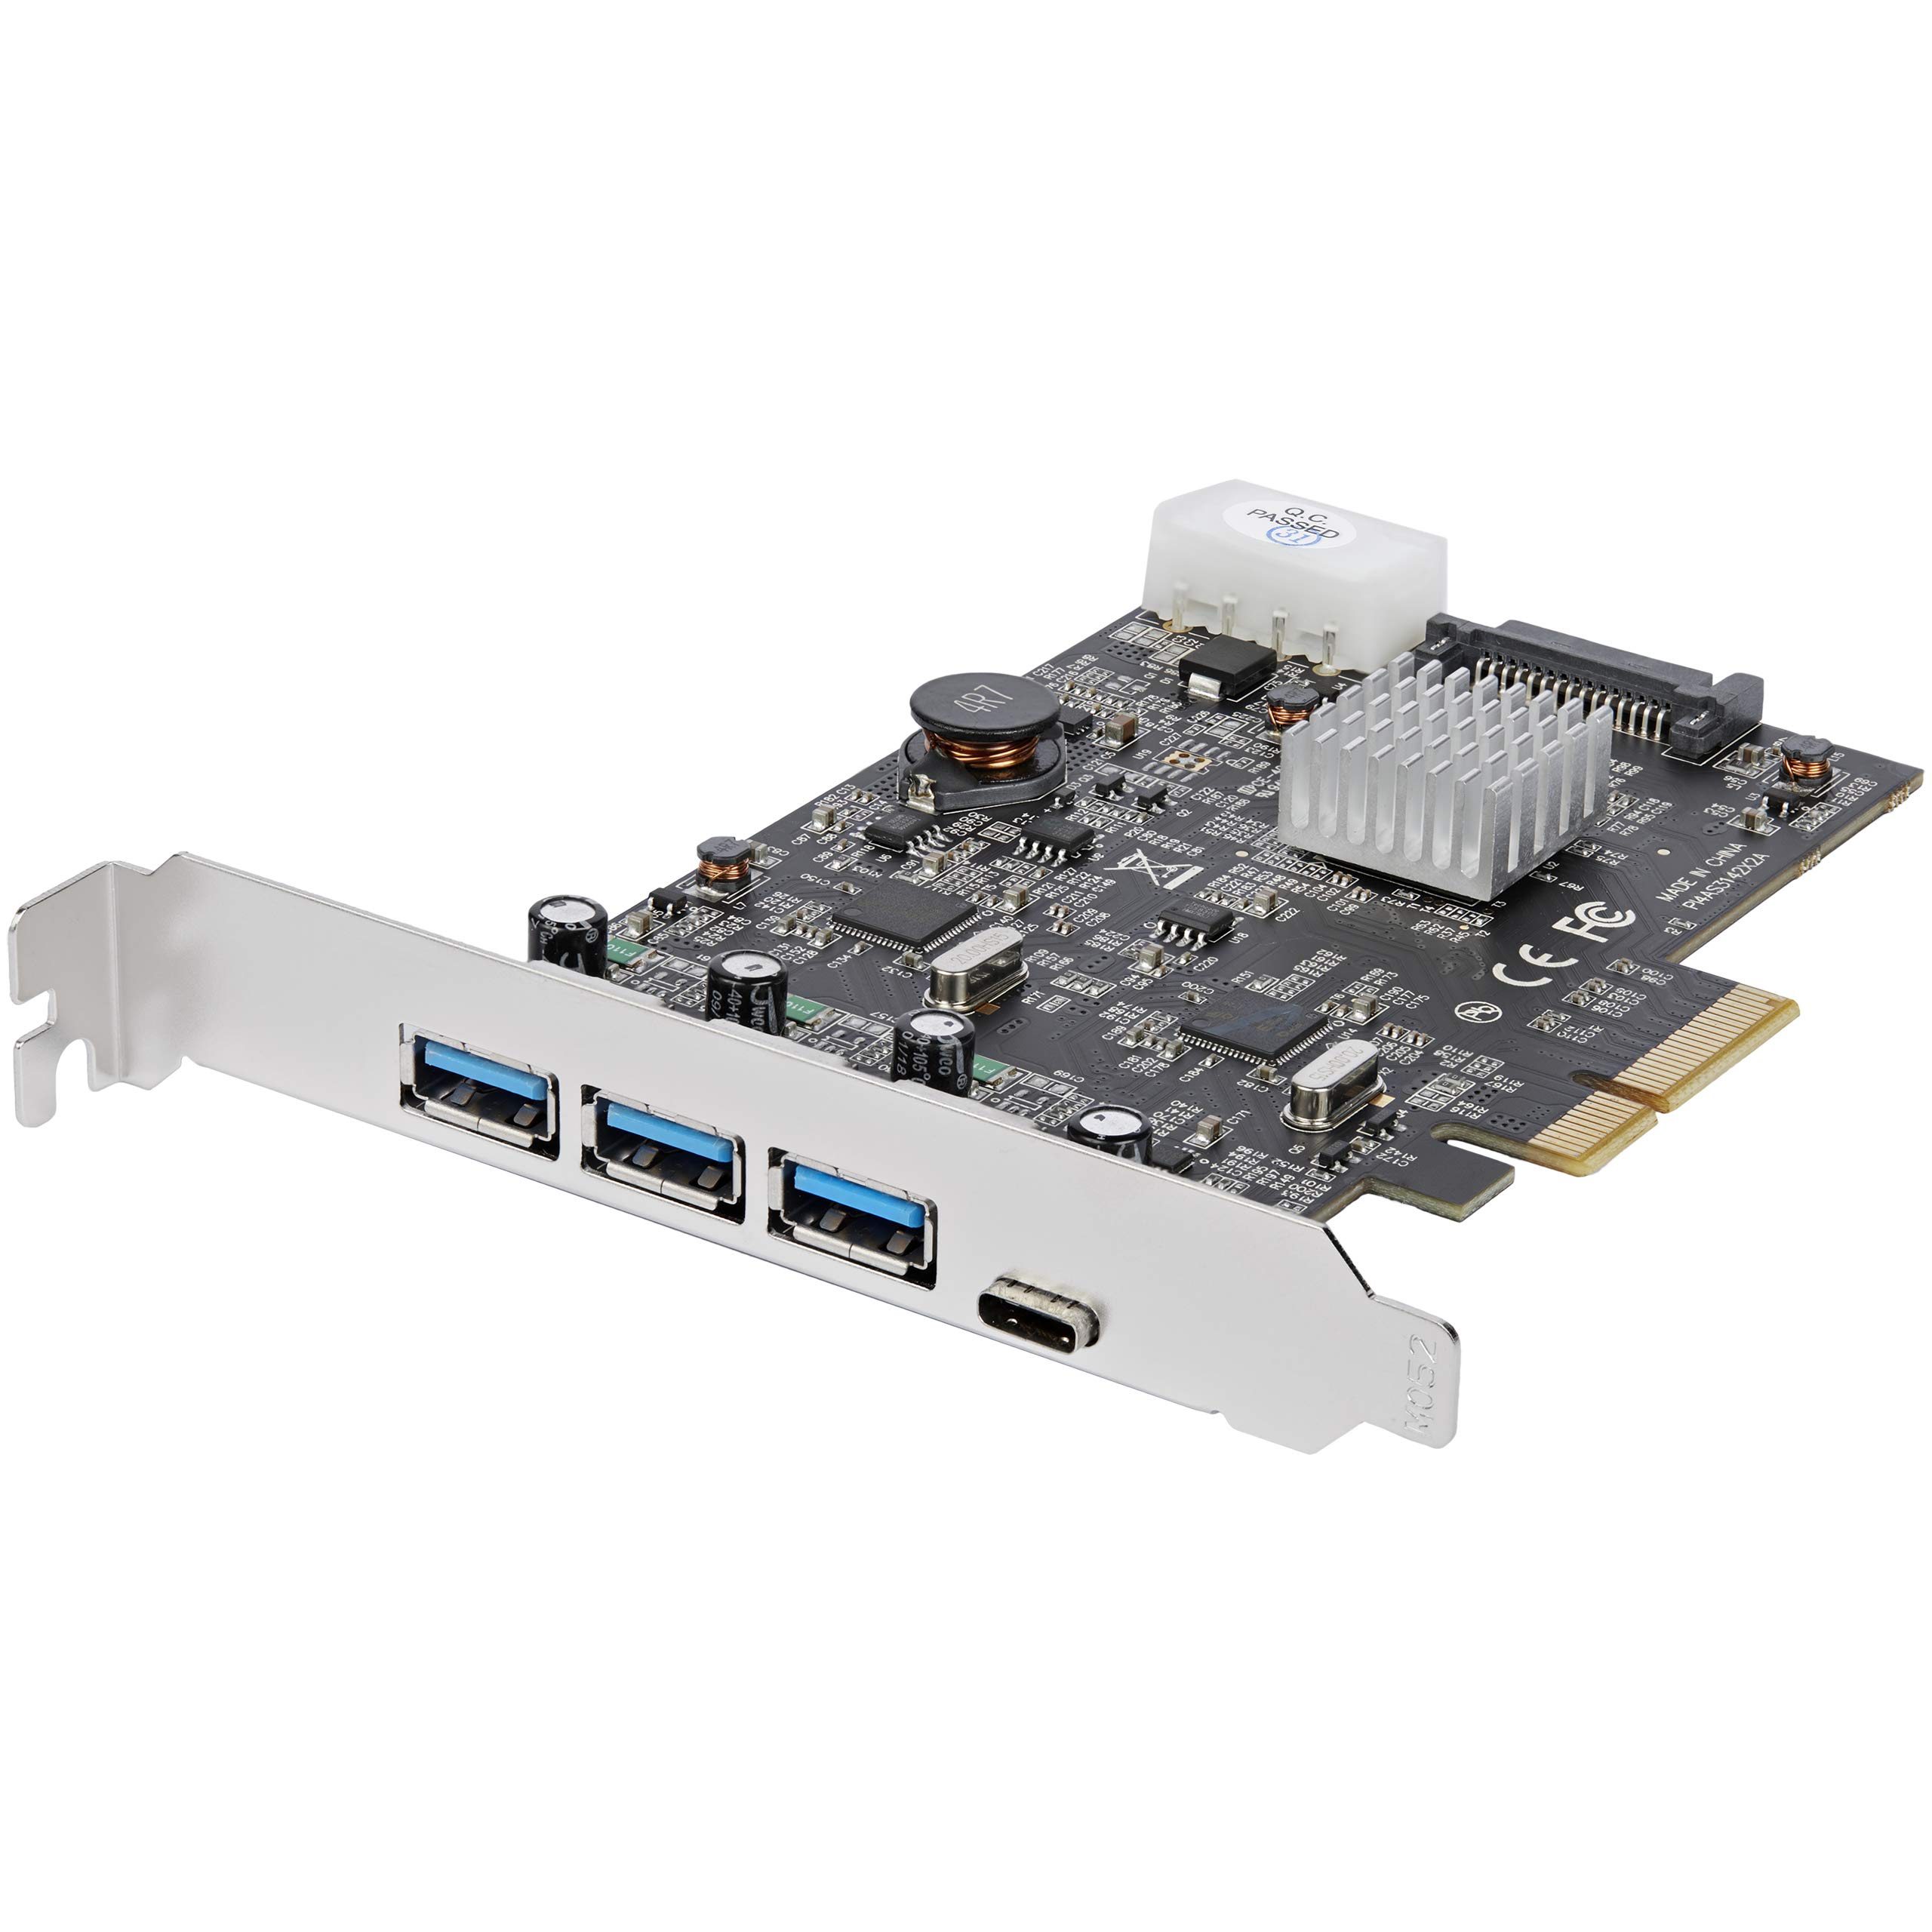 USB 3.1 PCIe Card - 3X USB-A and 1x USB-C - 2X Dedicated Cha